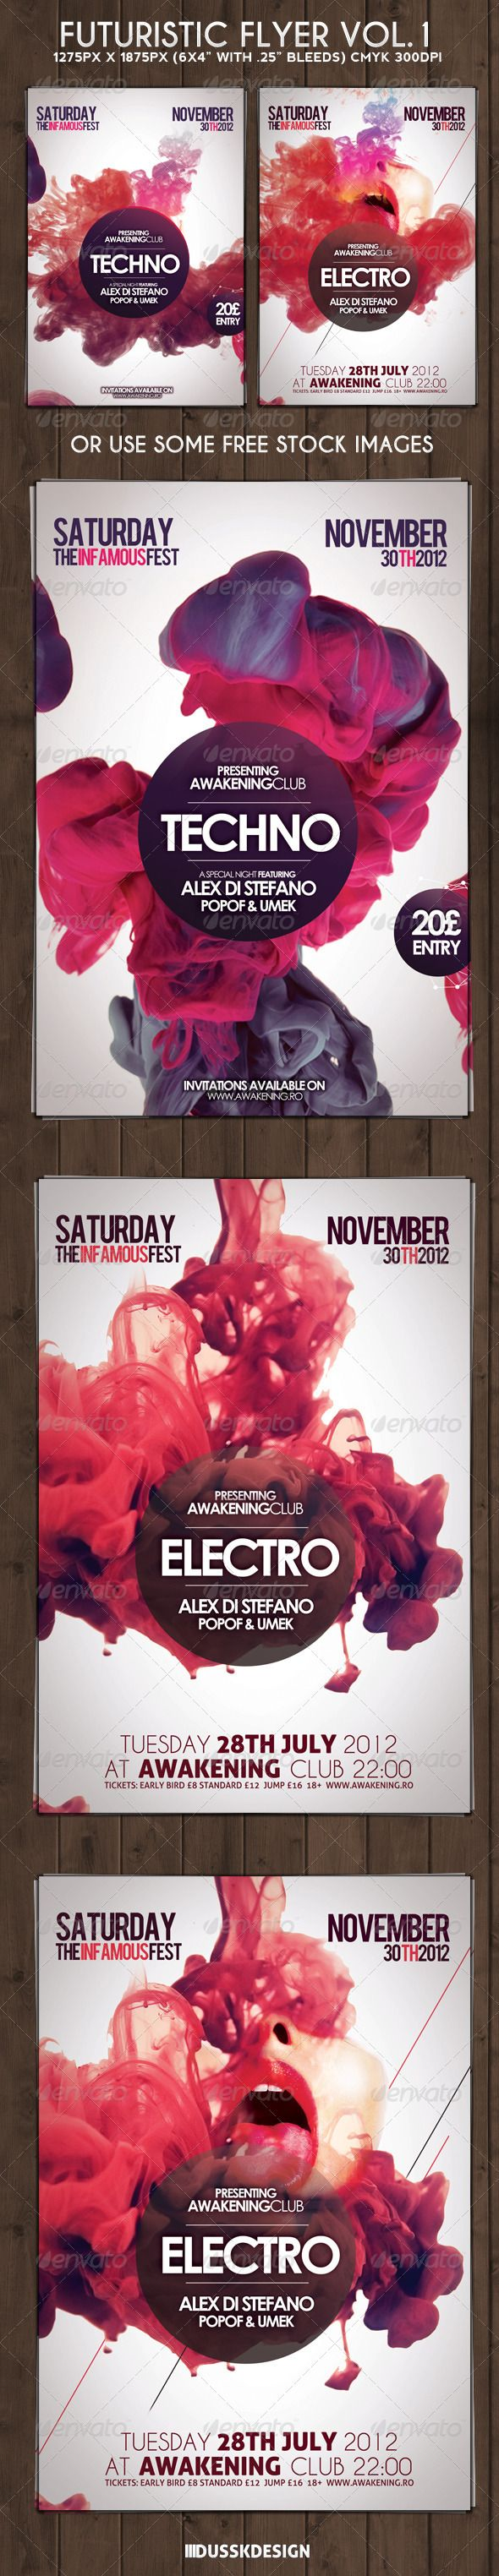 Futuristic Flyer Vol. 1 http://graphicriver.net/item/futuristic-flyer-vol-3/3848276?ref=DusskDesign